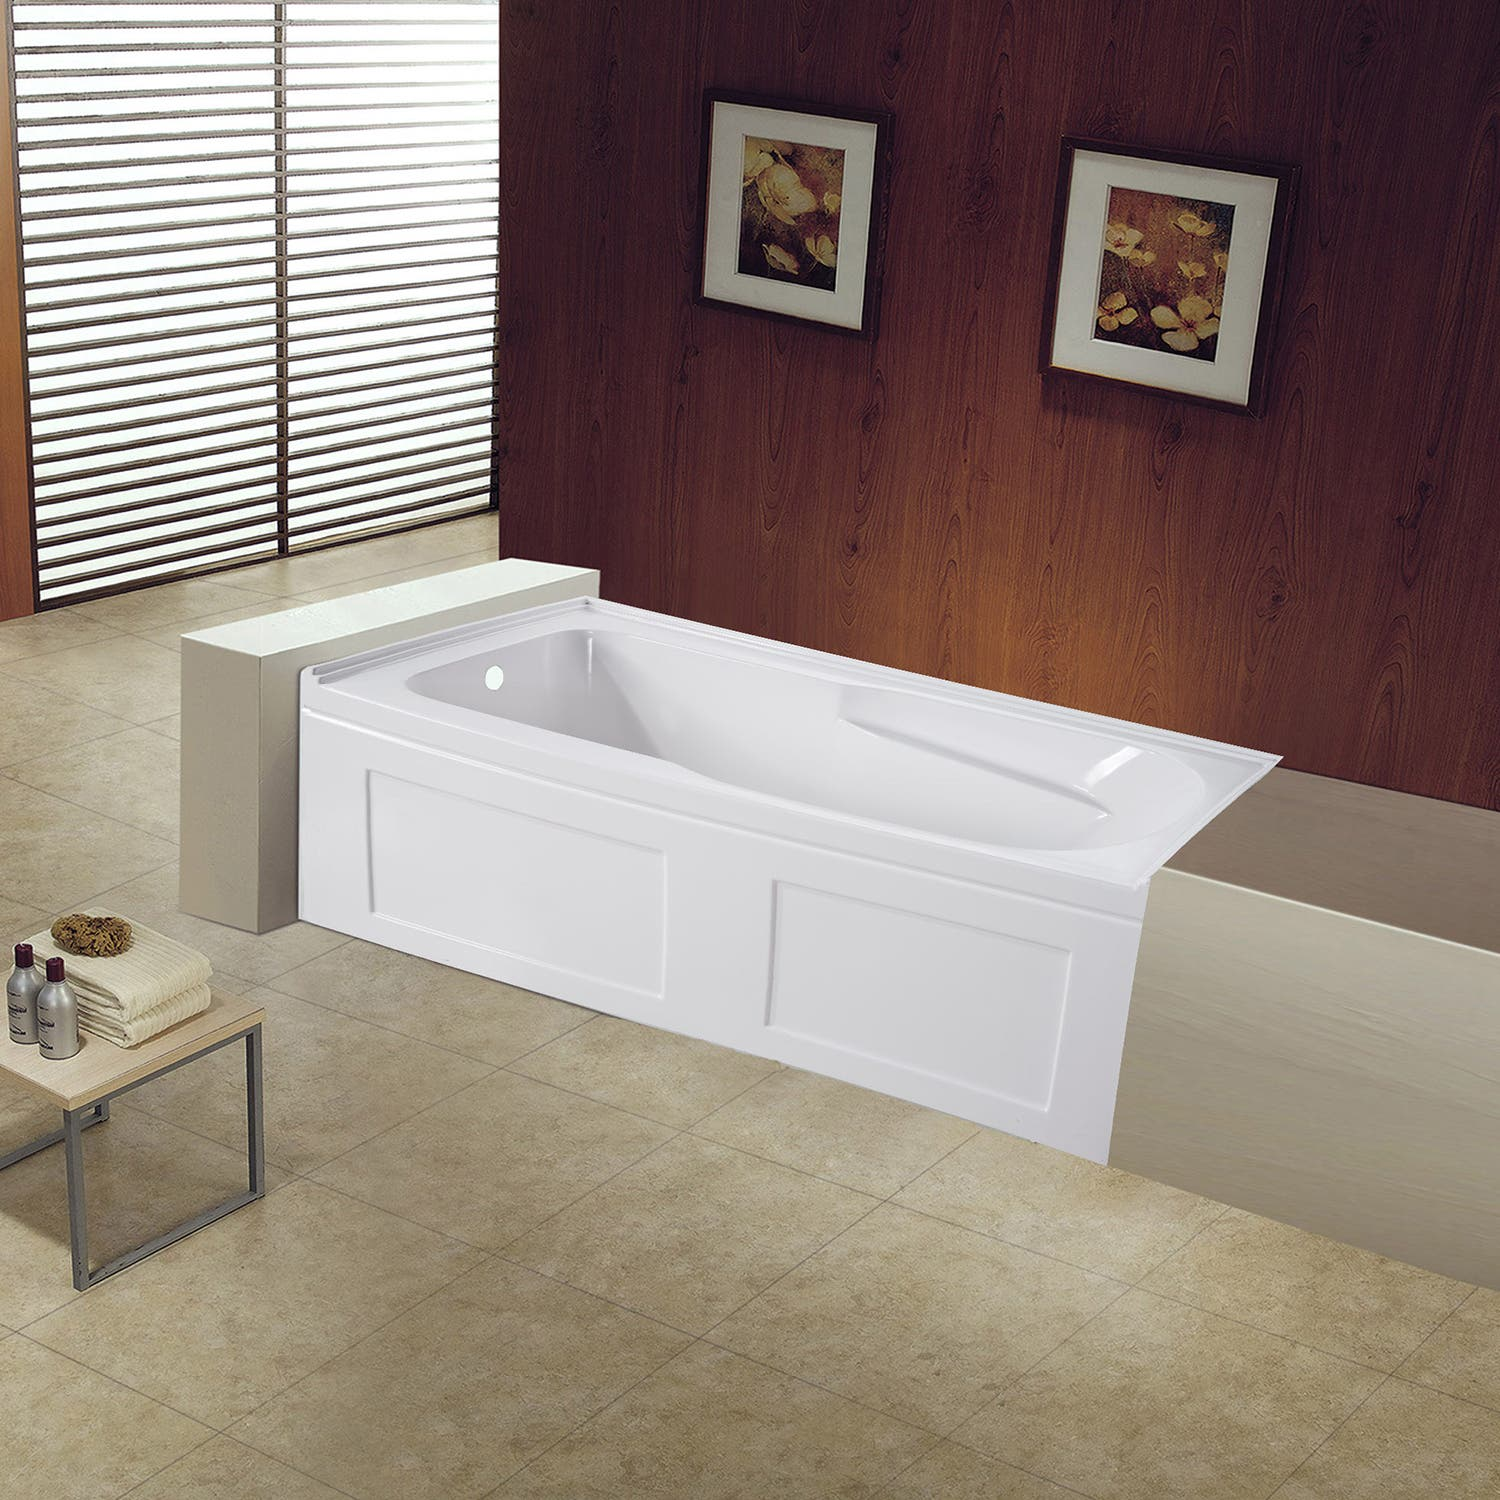 Bathtub Feature 12: VTAP603220CL